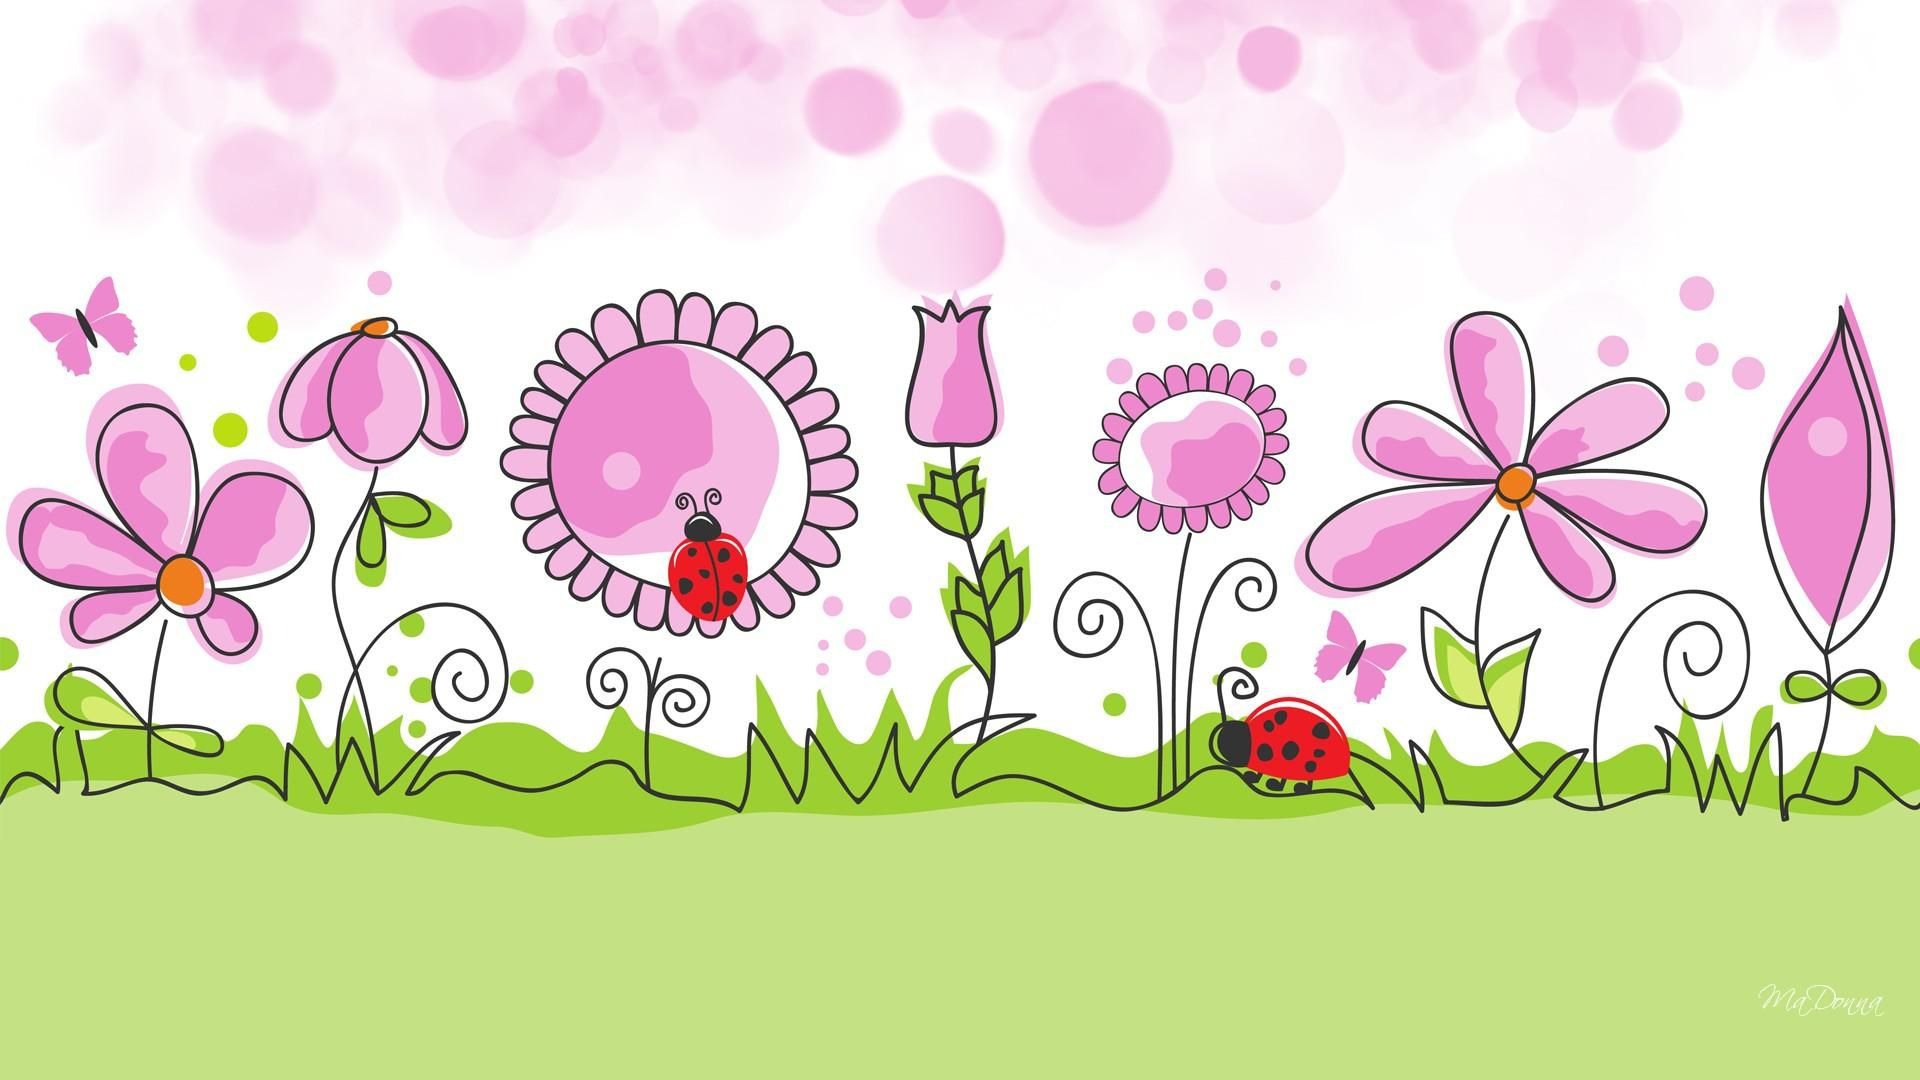 Flower Garden Wallpaper Background hd flower garden spring vector free desktop background wallpaper